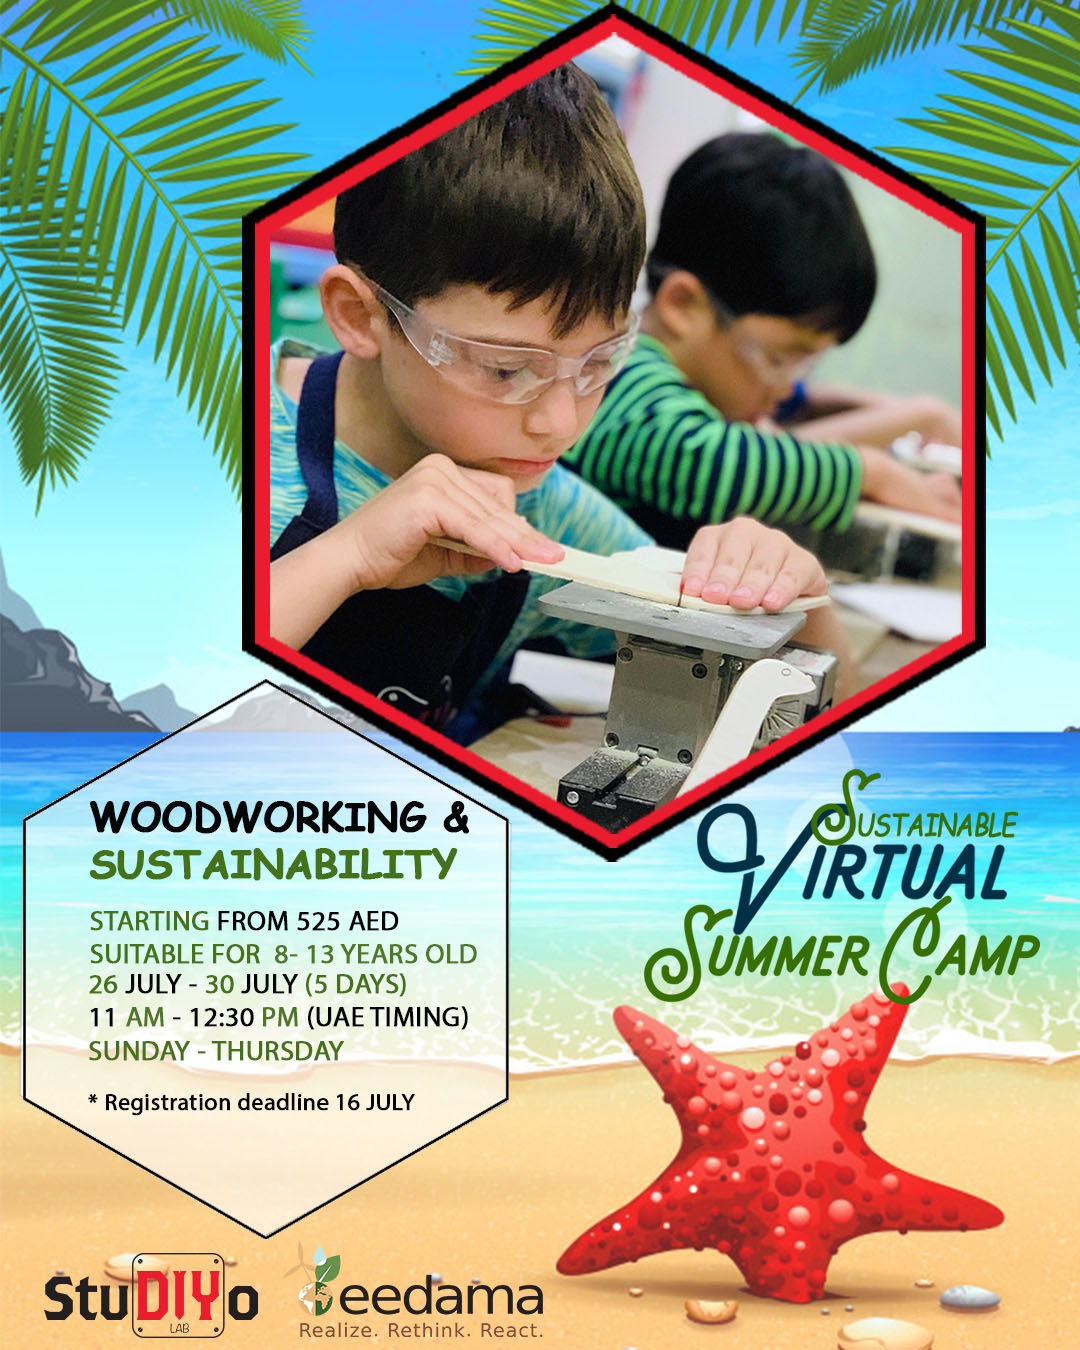 SUMMER CAMP studiyo